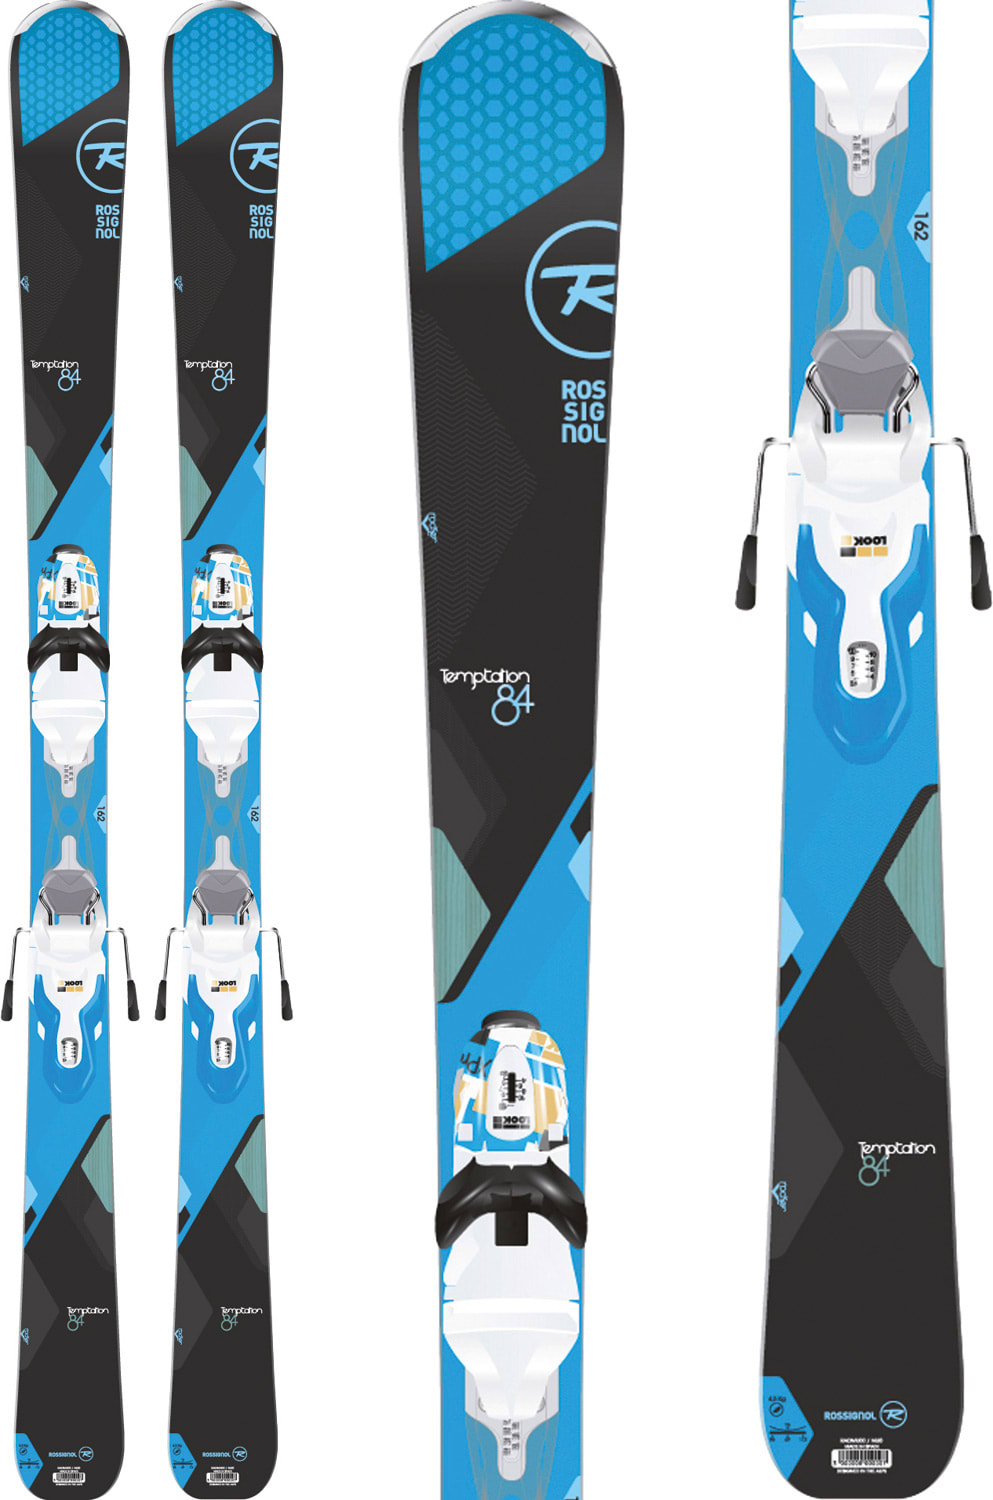 af3d8b209a Rossignol Temptation 84 Carbon Skis w  Xpress 11 Bindings - thumbnail 1